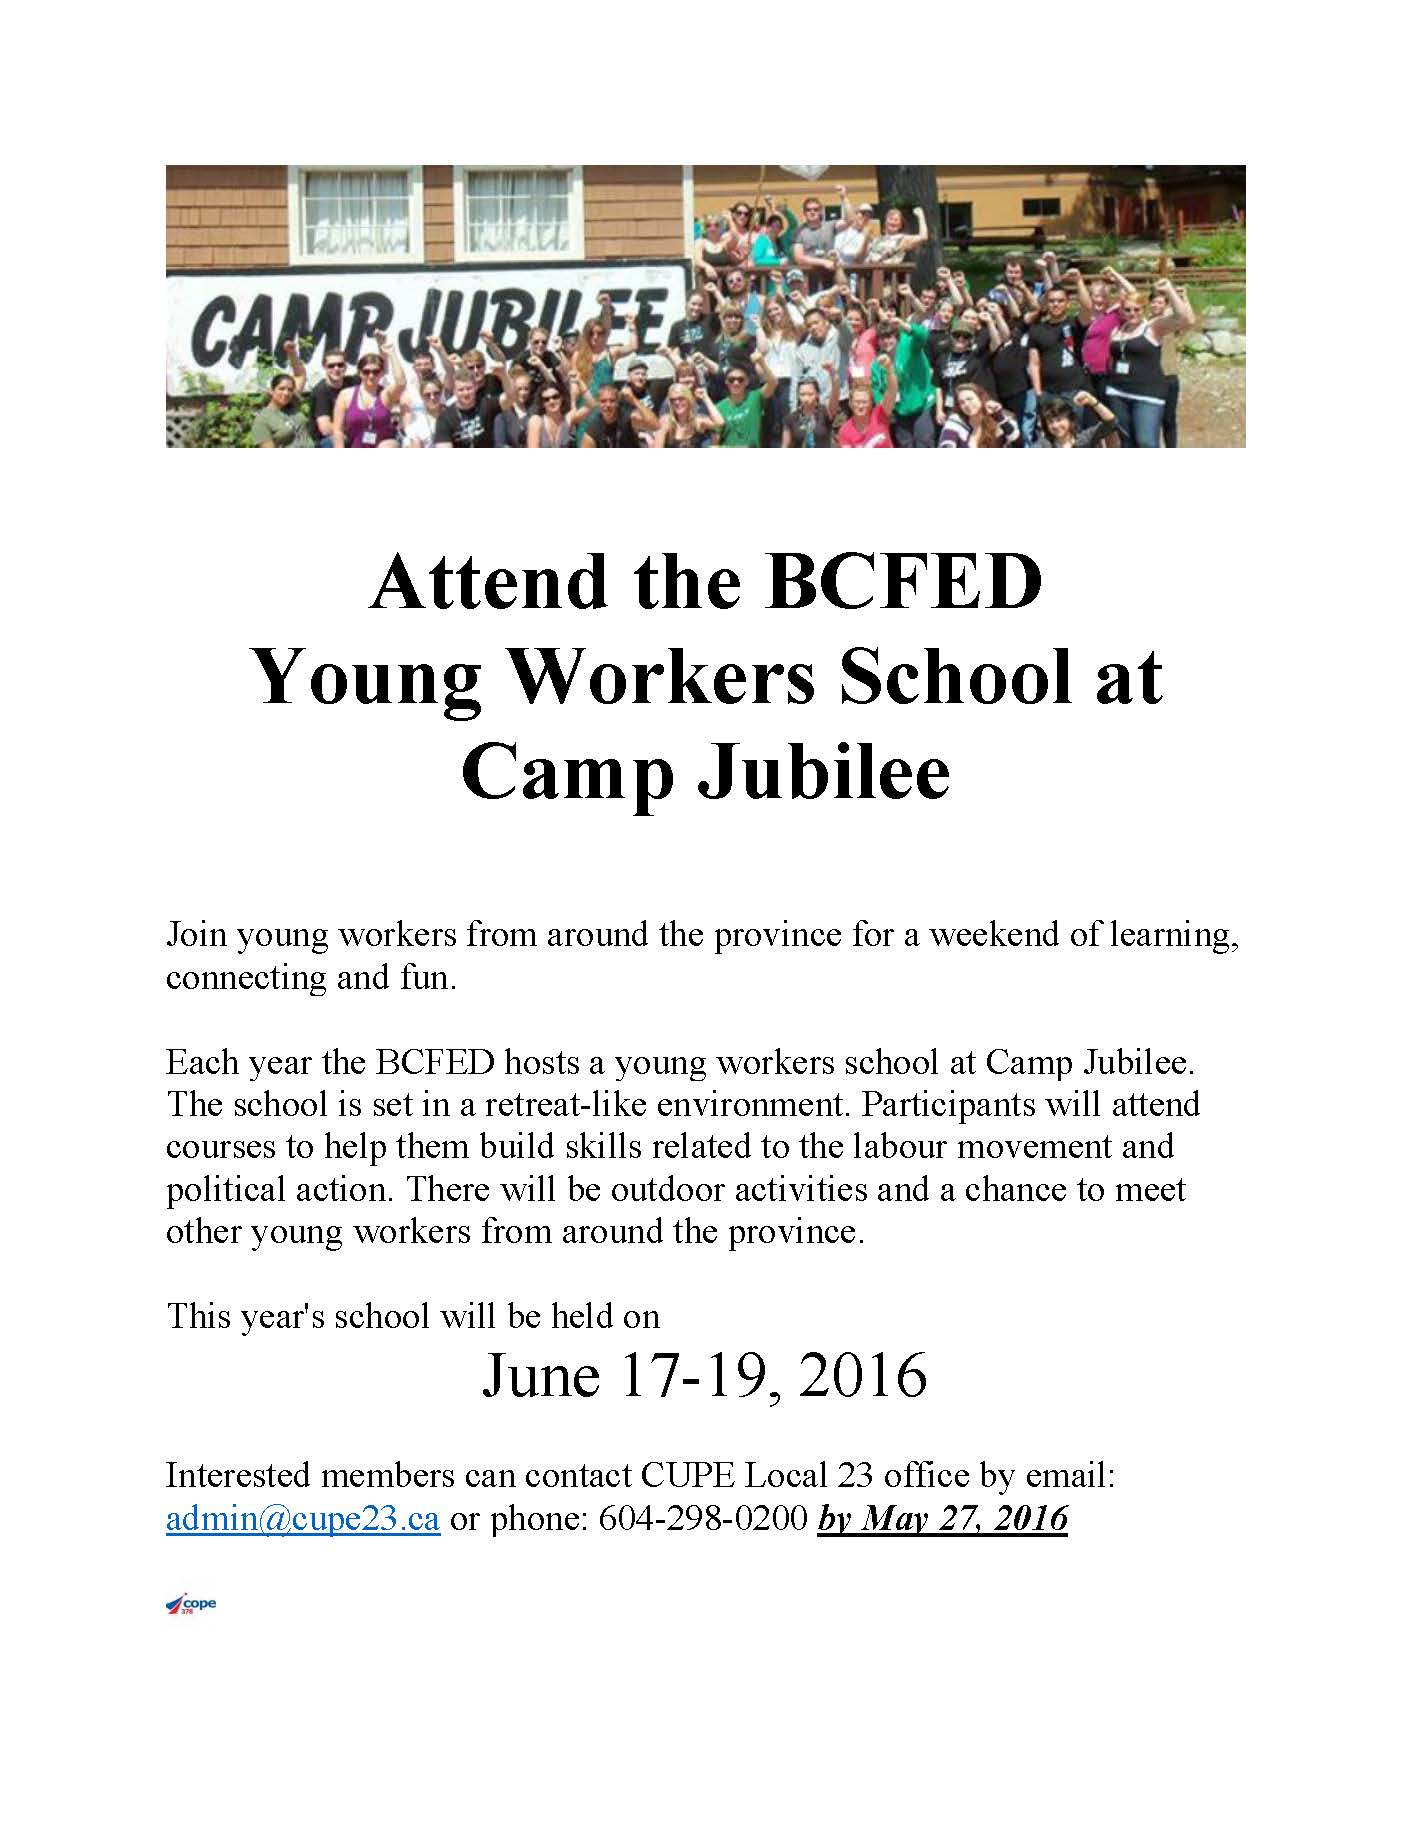 Young Workers School Flyer 2016